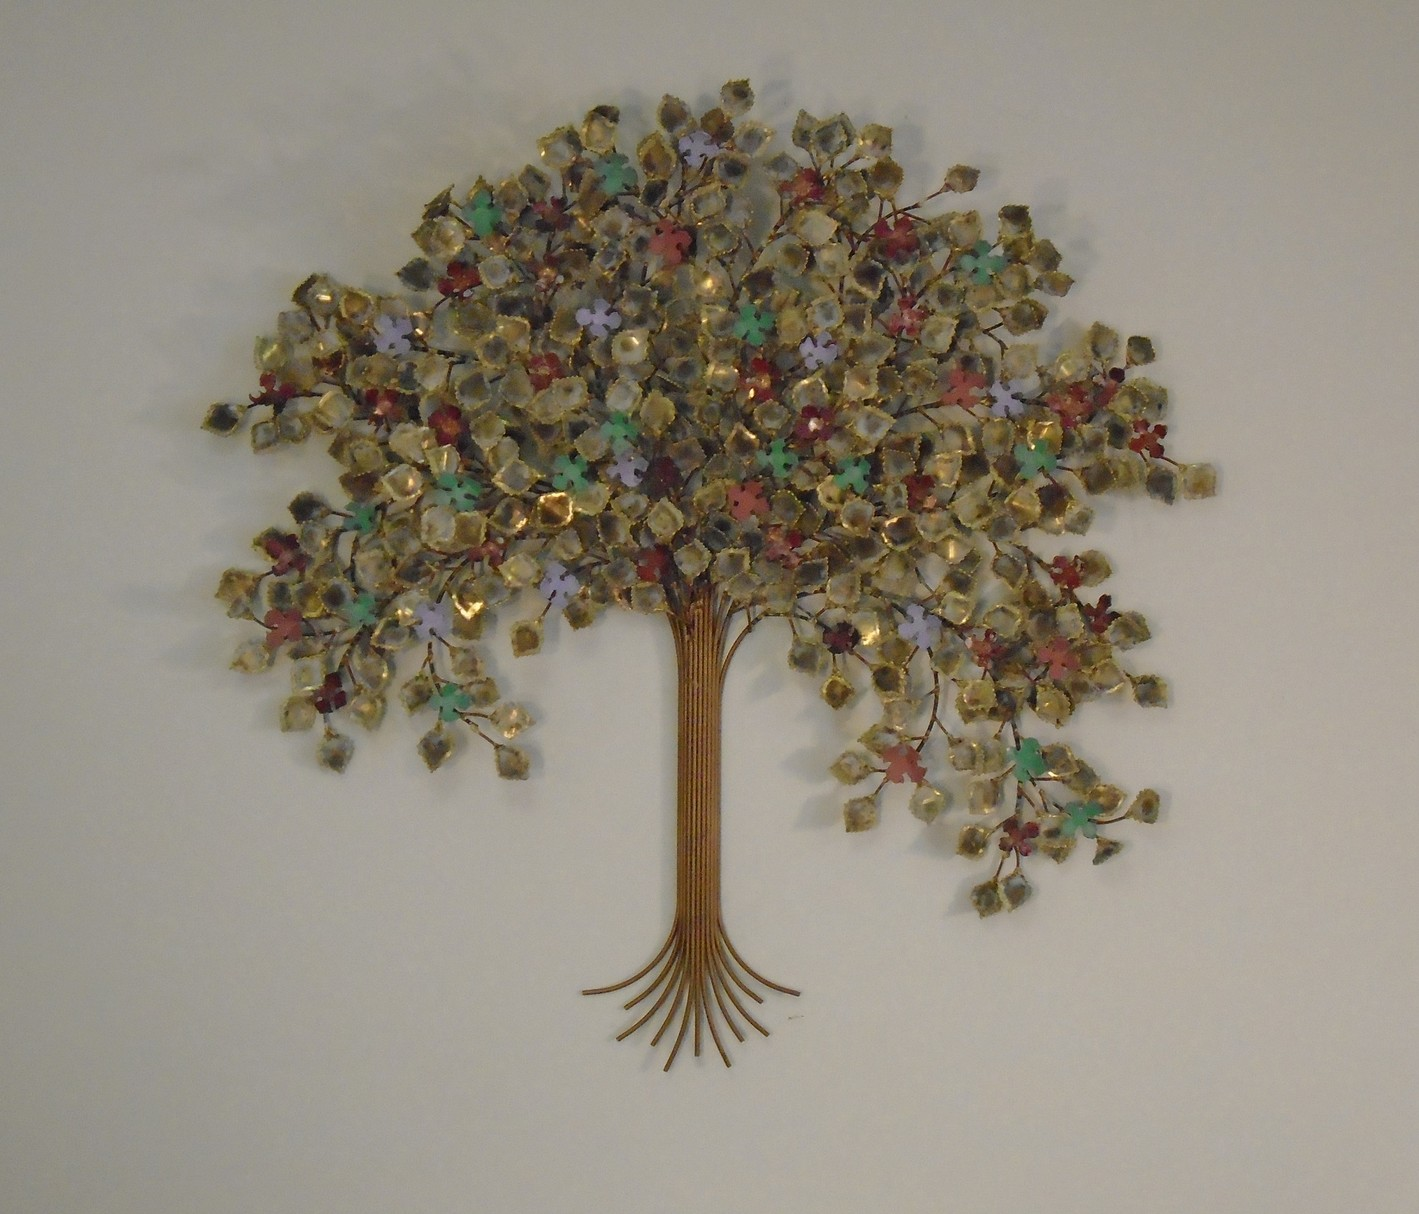 Tree of life metal wall art metal wall sculpture Home decor sculptures